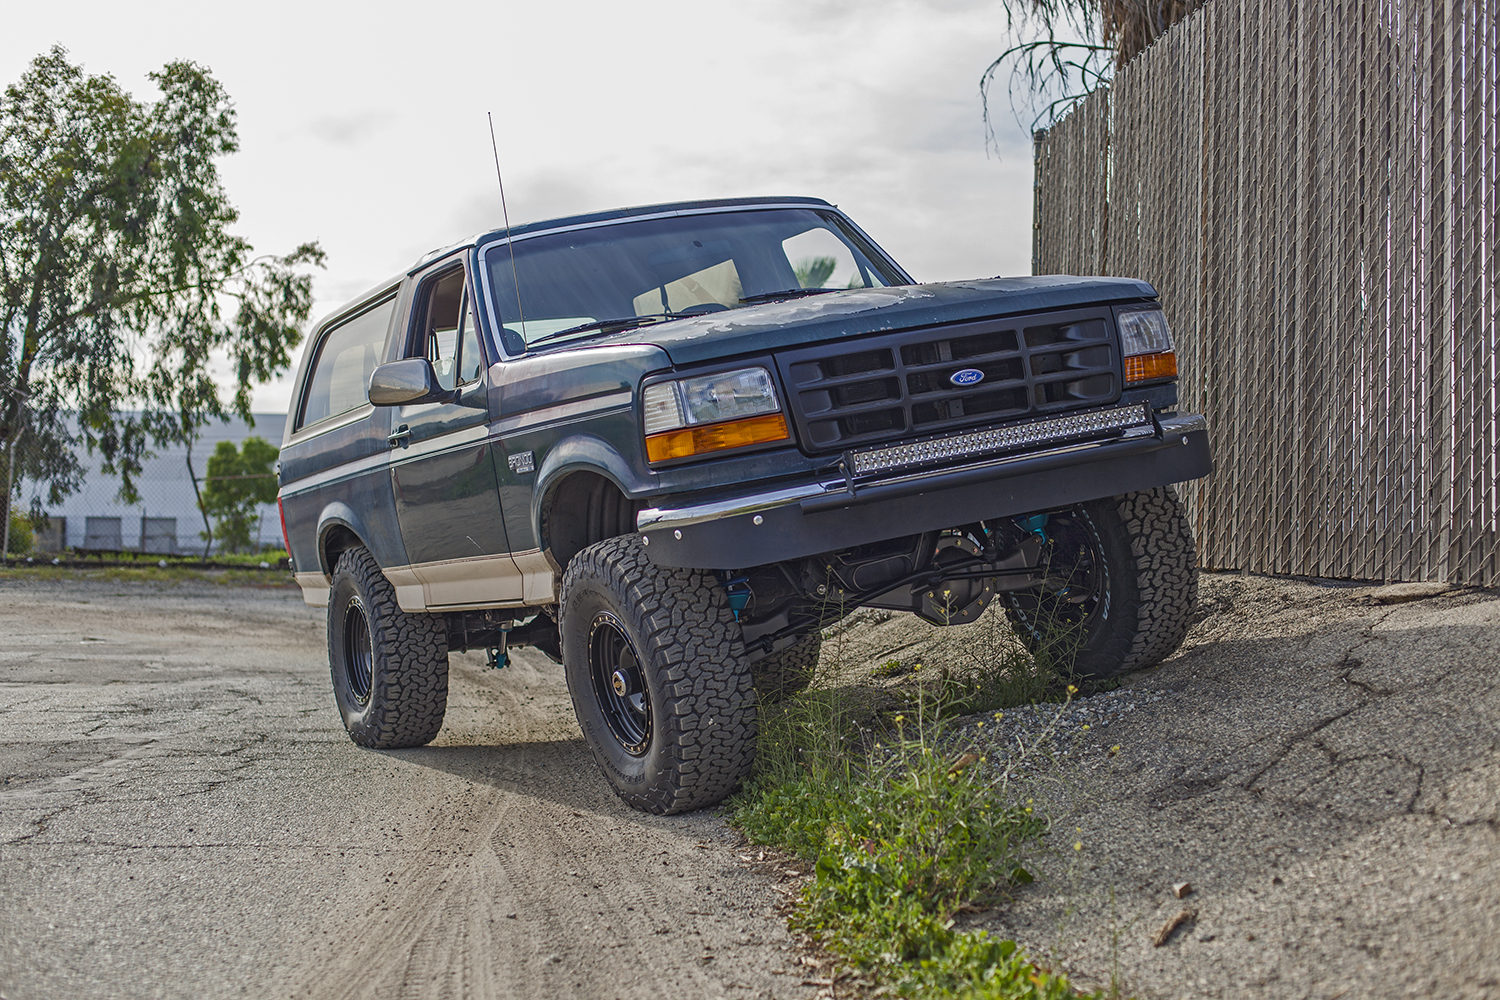 Mikes 1995 Bronco Desolate Motorsports Ford Paint Jobs About The Vehicle